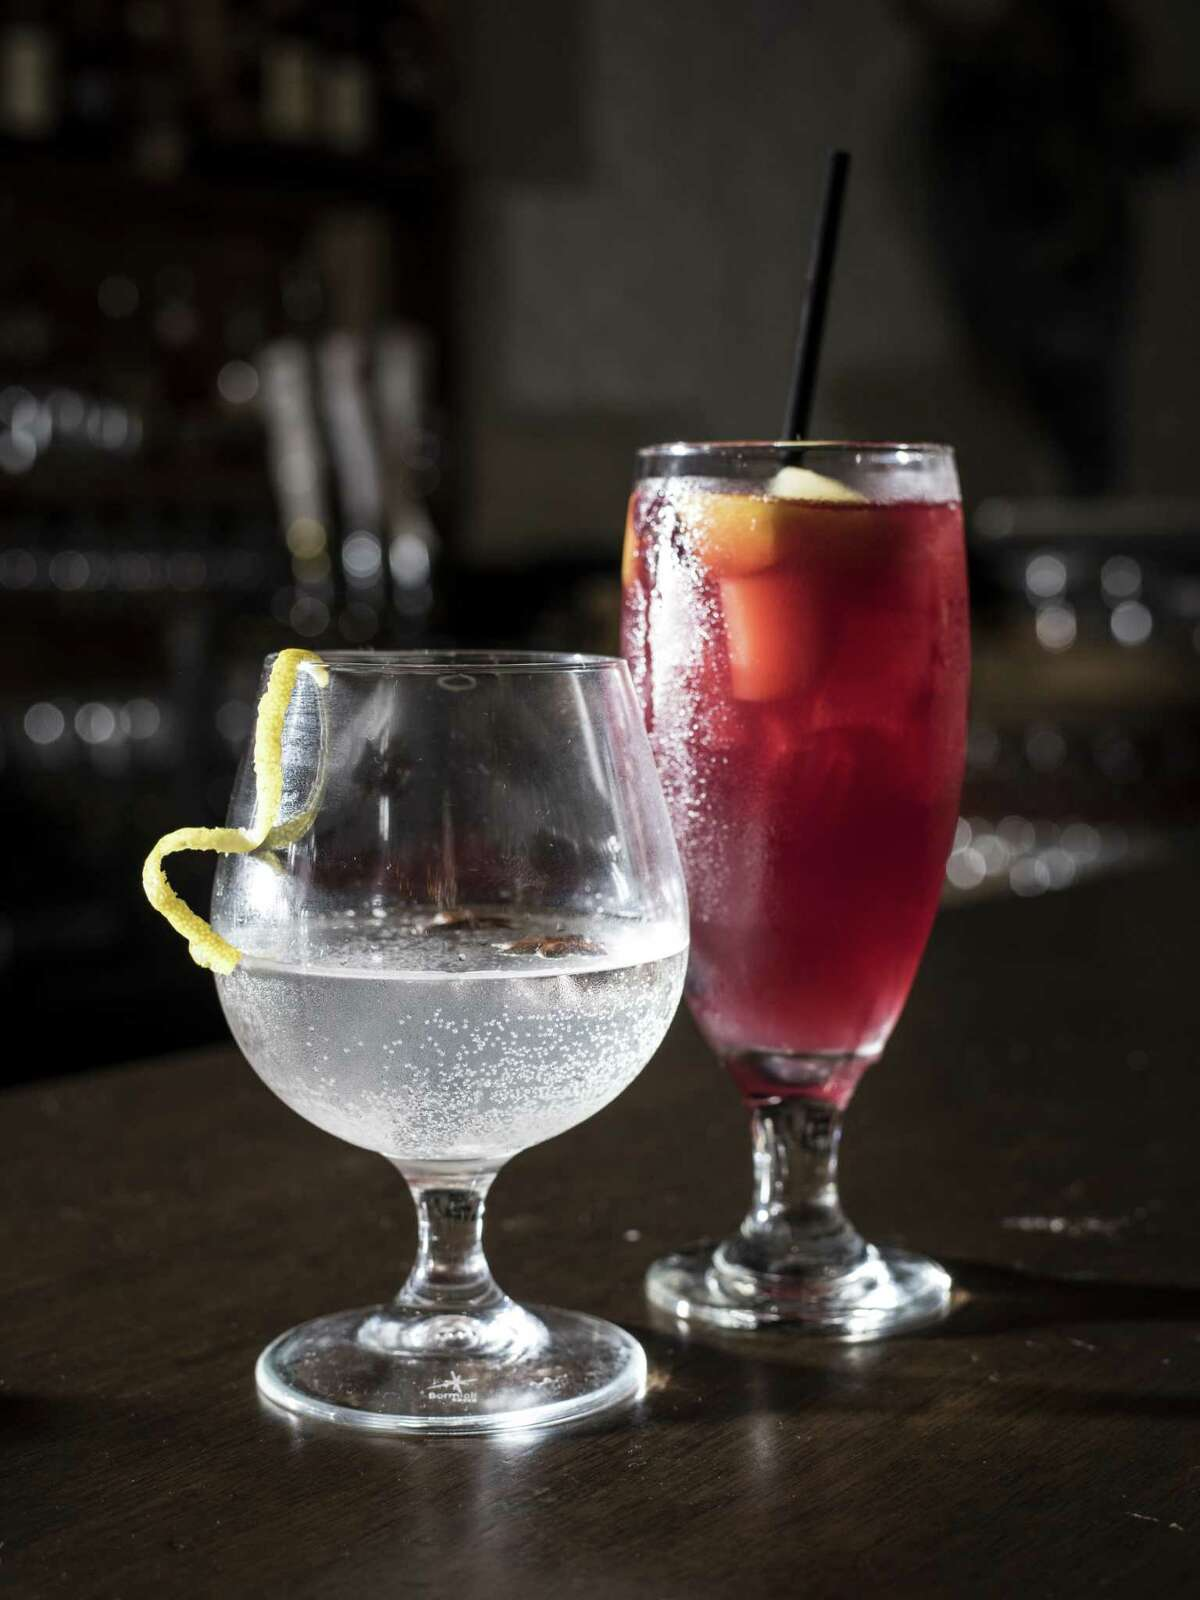 The gin-based Mallorca drink and Spanish sangria are featured at Toro Kitchen + Bar.